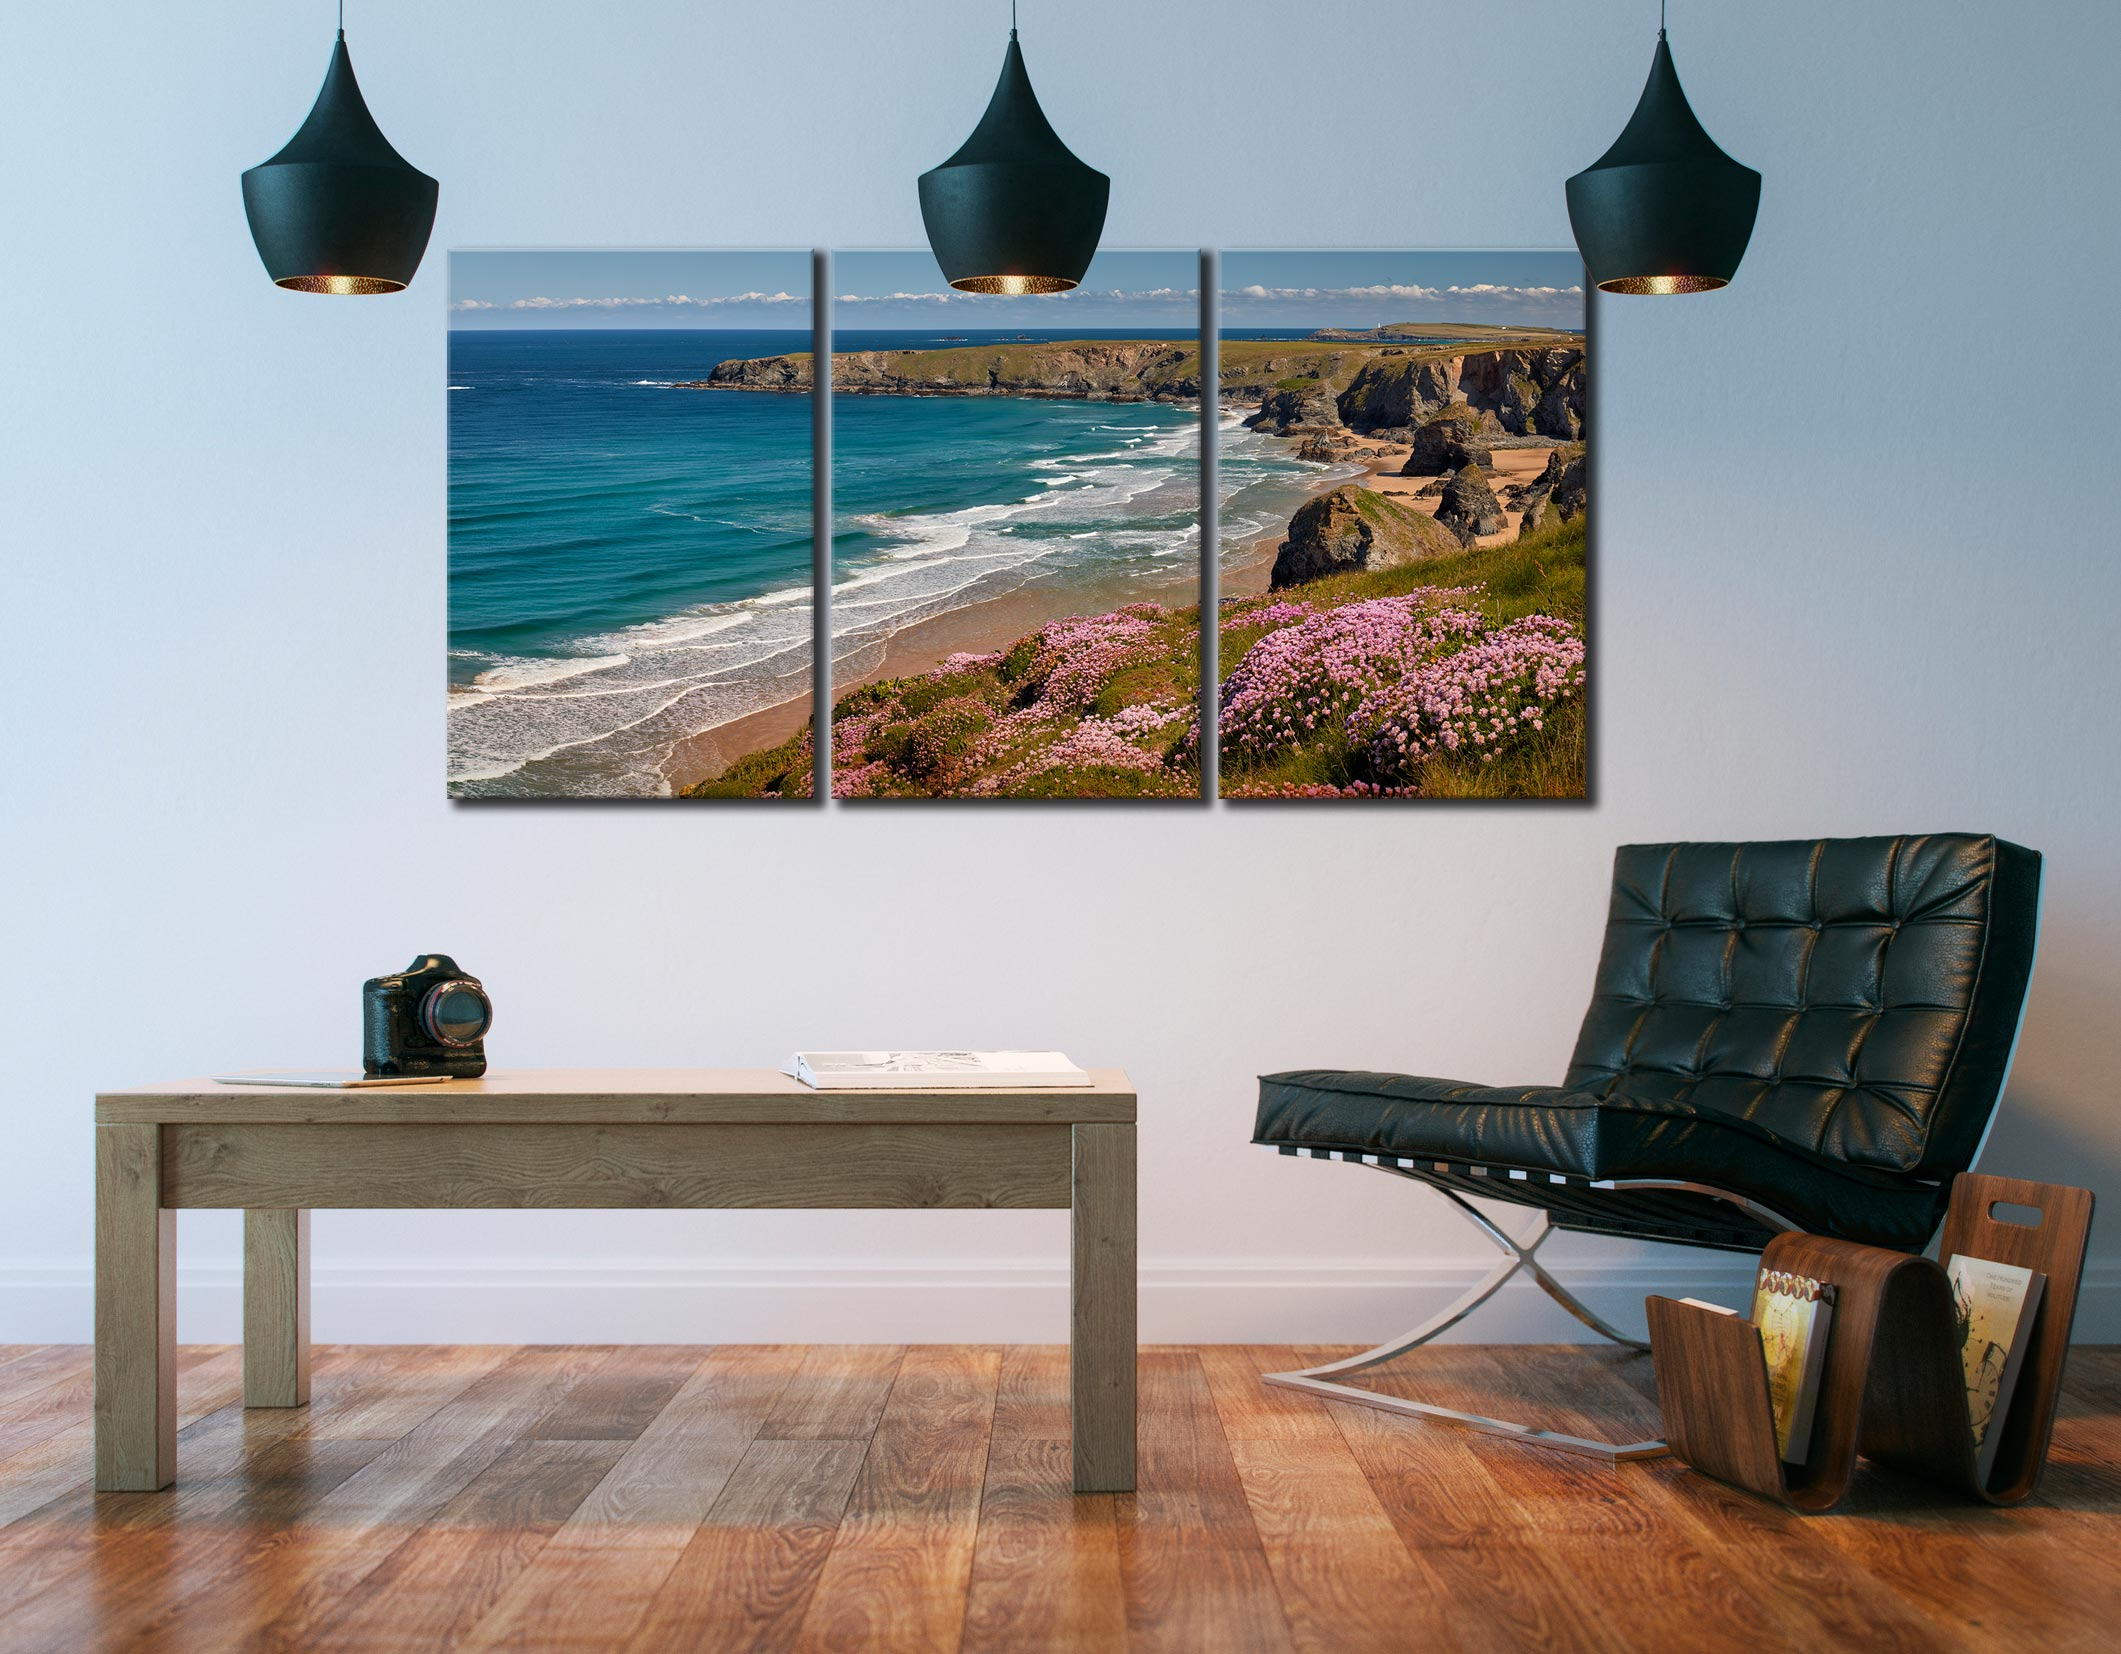 Spring Wildflowers Bedruthan Steps - 3 Panel Canvas on Wall